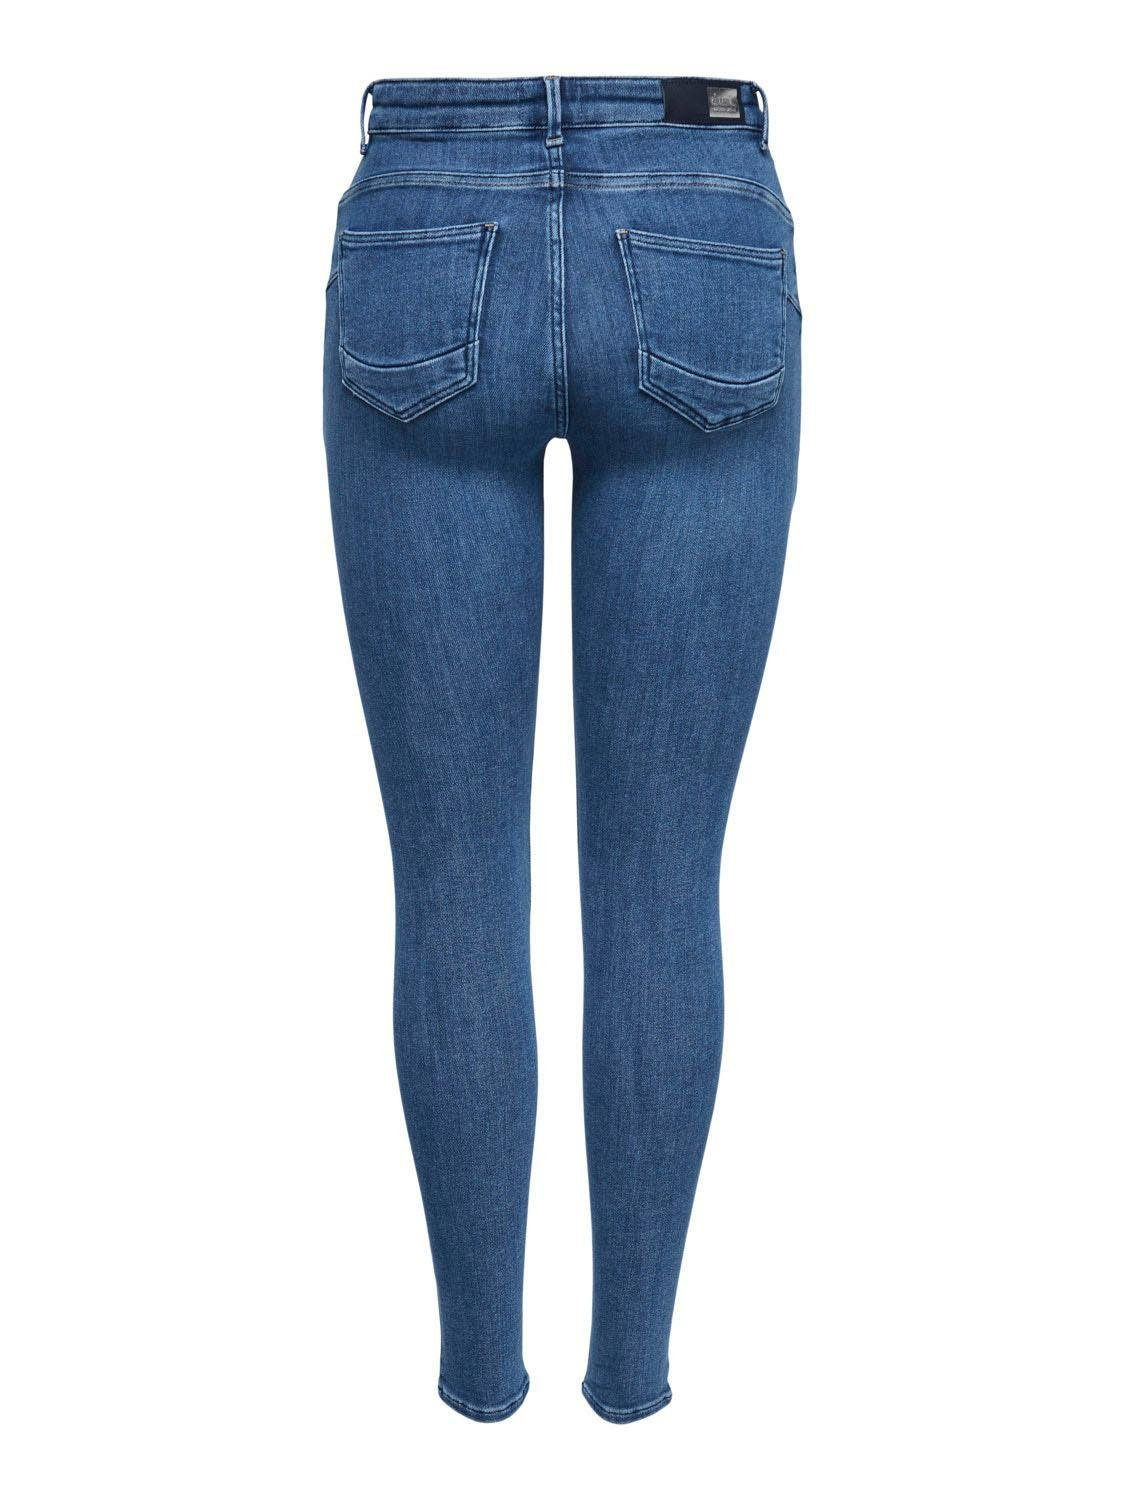 Only Skinny-fit-Jeans POWER PUSH UP mit Push-up-Effekt